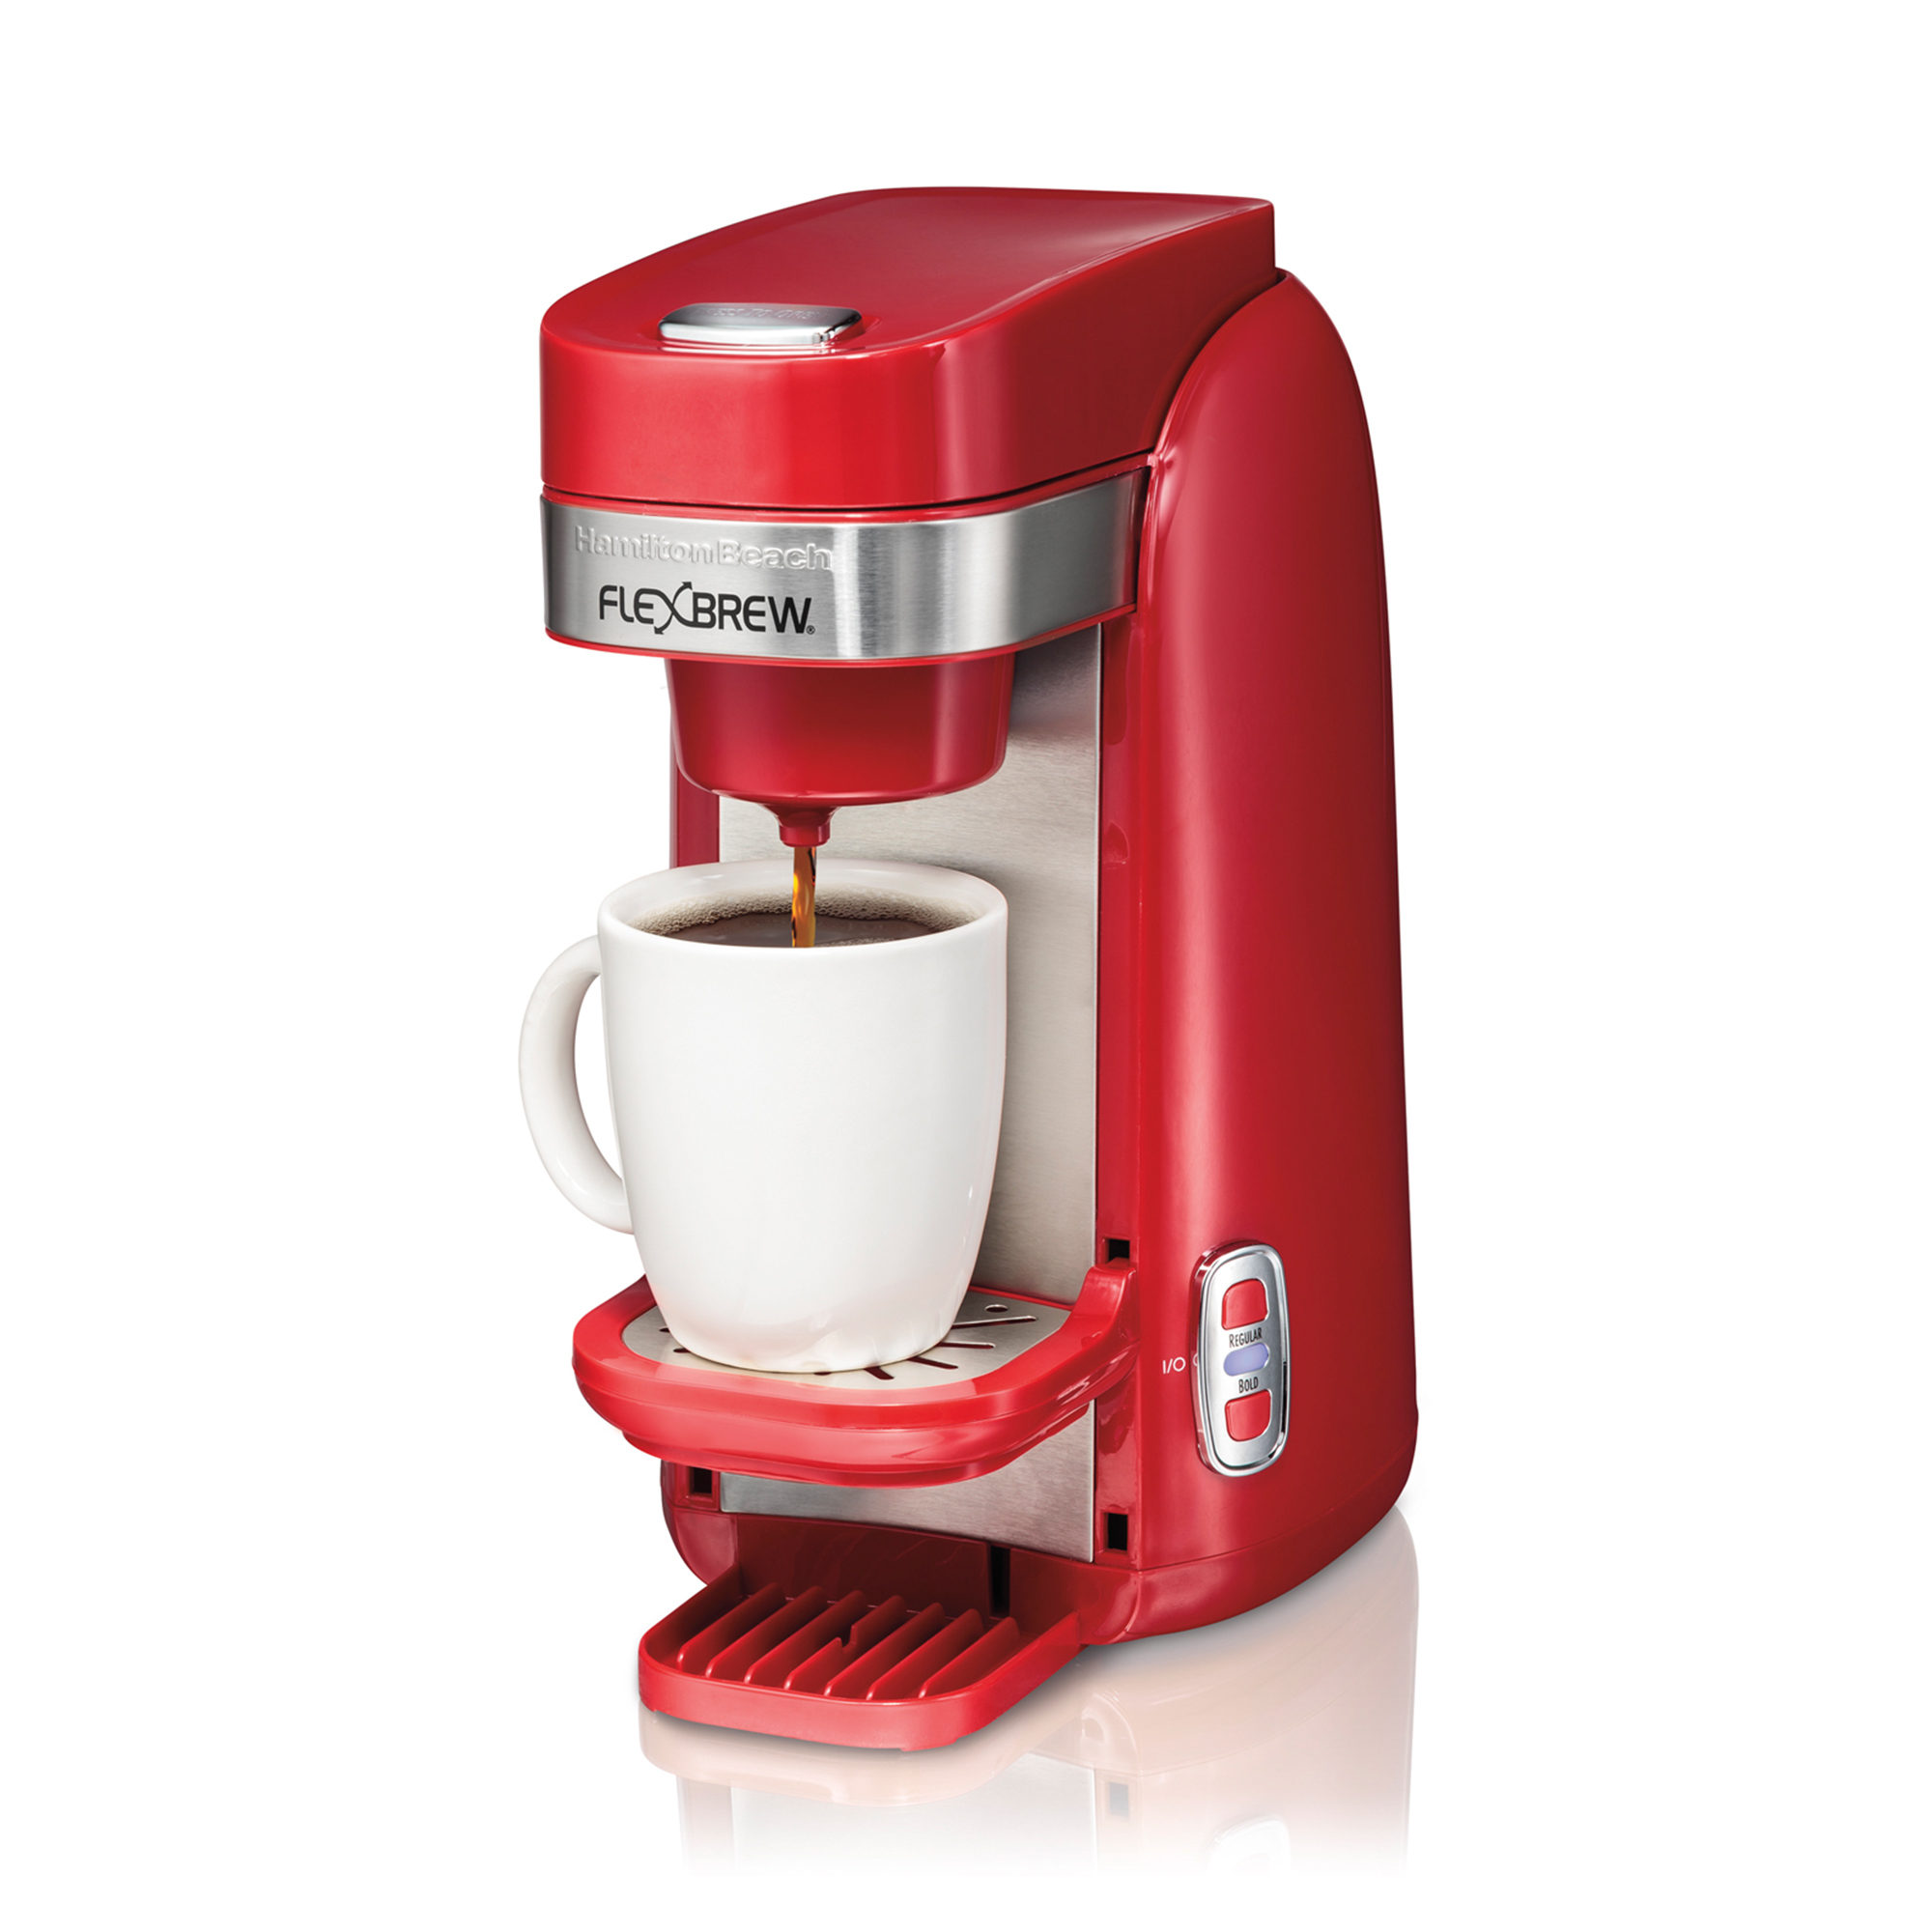 hamilton beach flexbrew single serve kcup compatible coffee maker  - hamilton beach flexbrew single serve kcup compatible coffee maker red